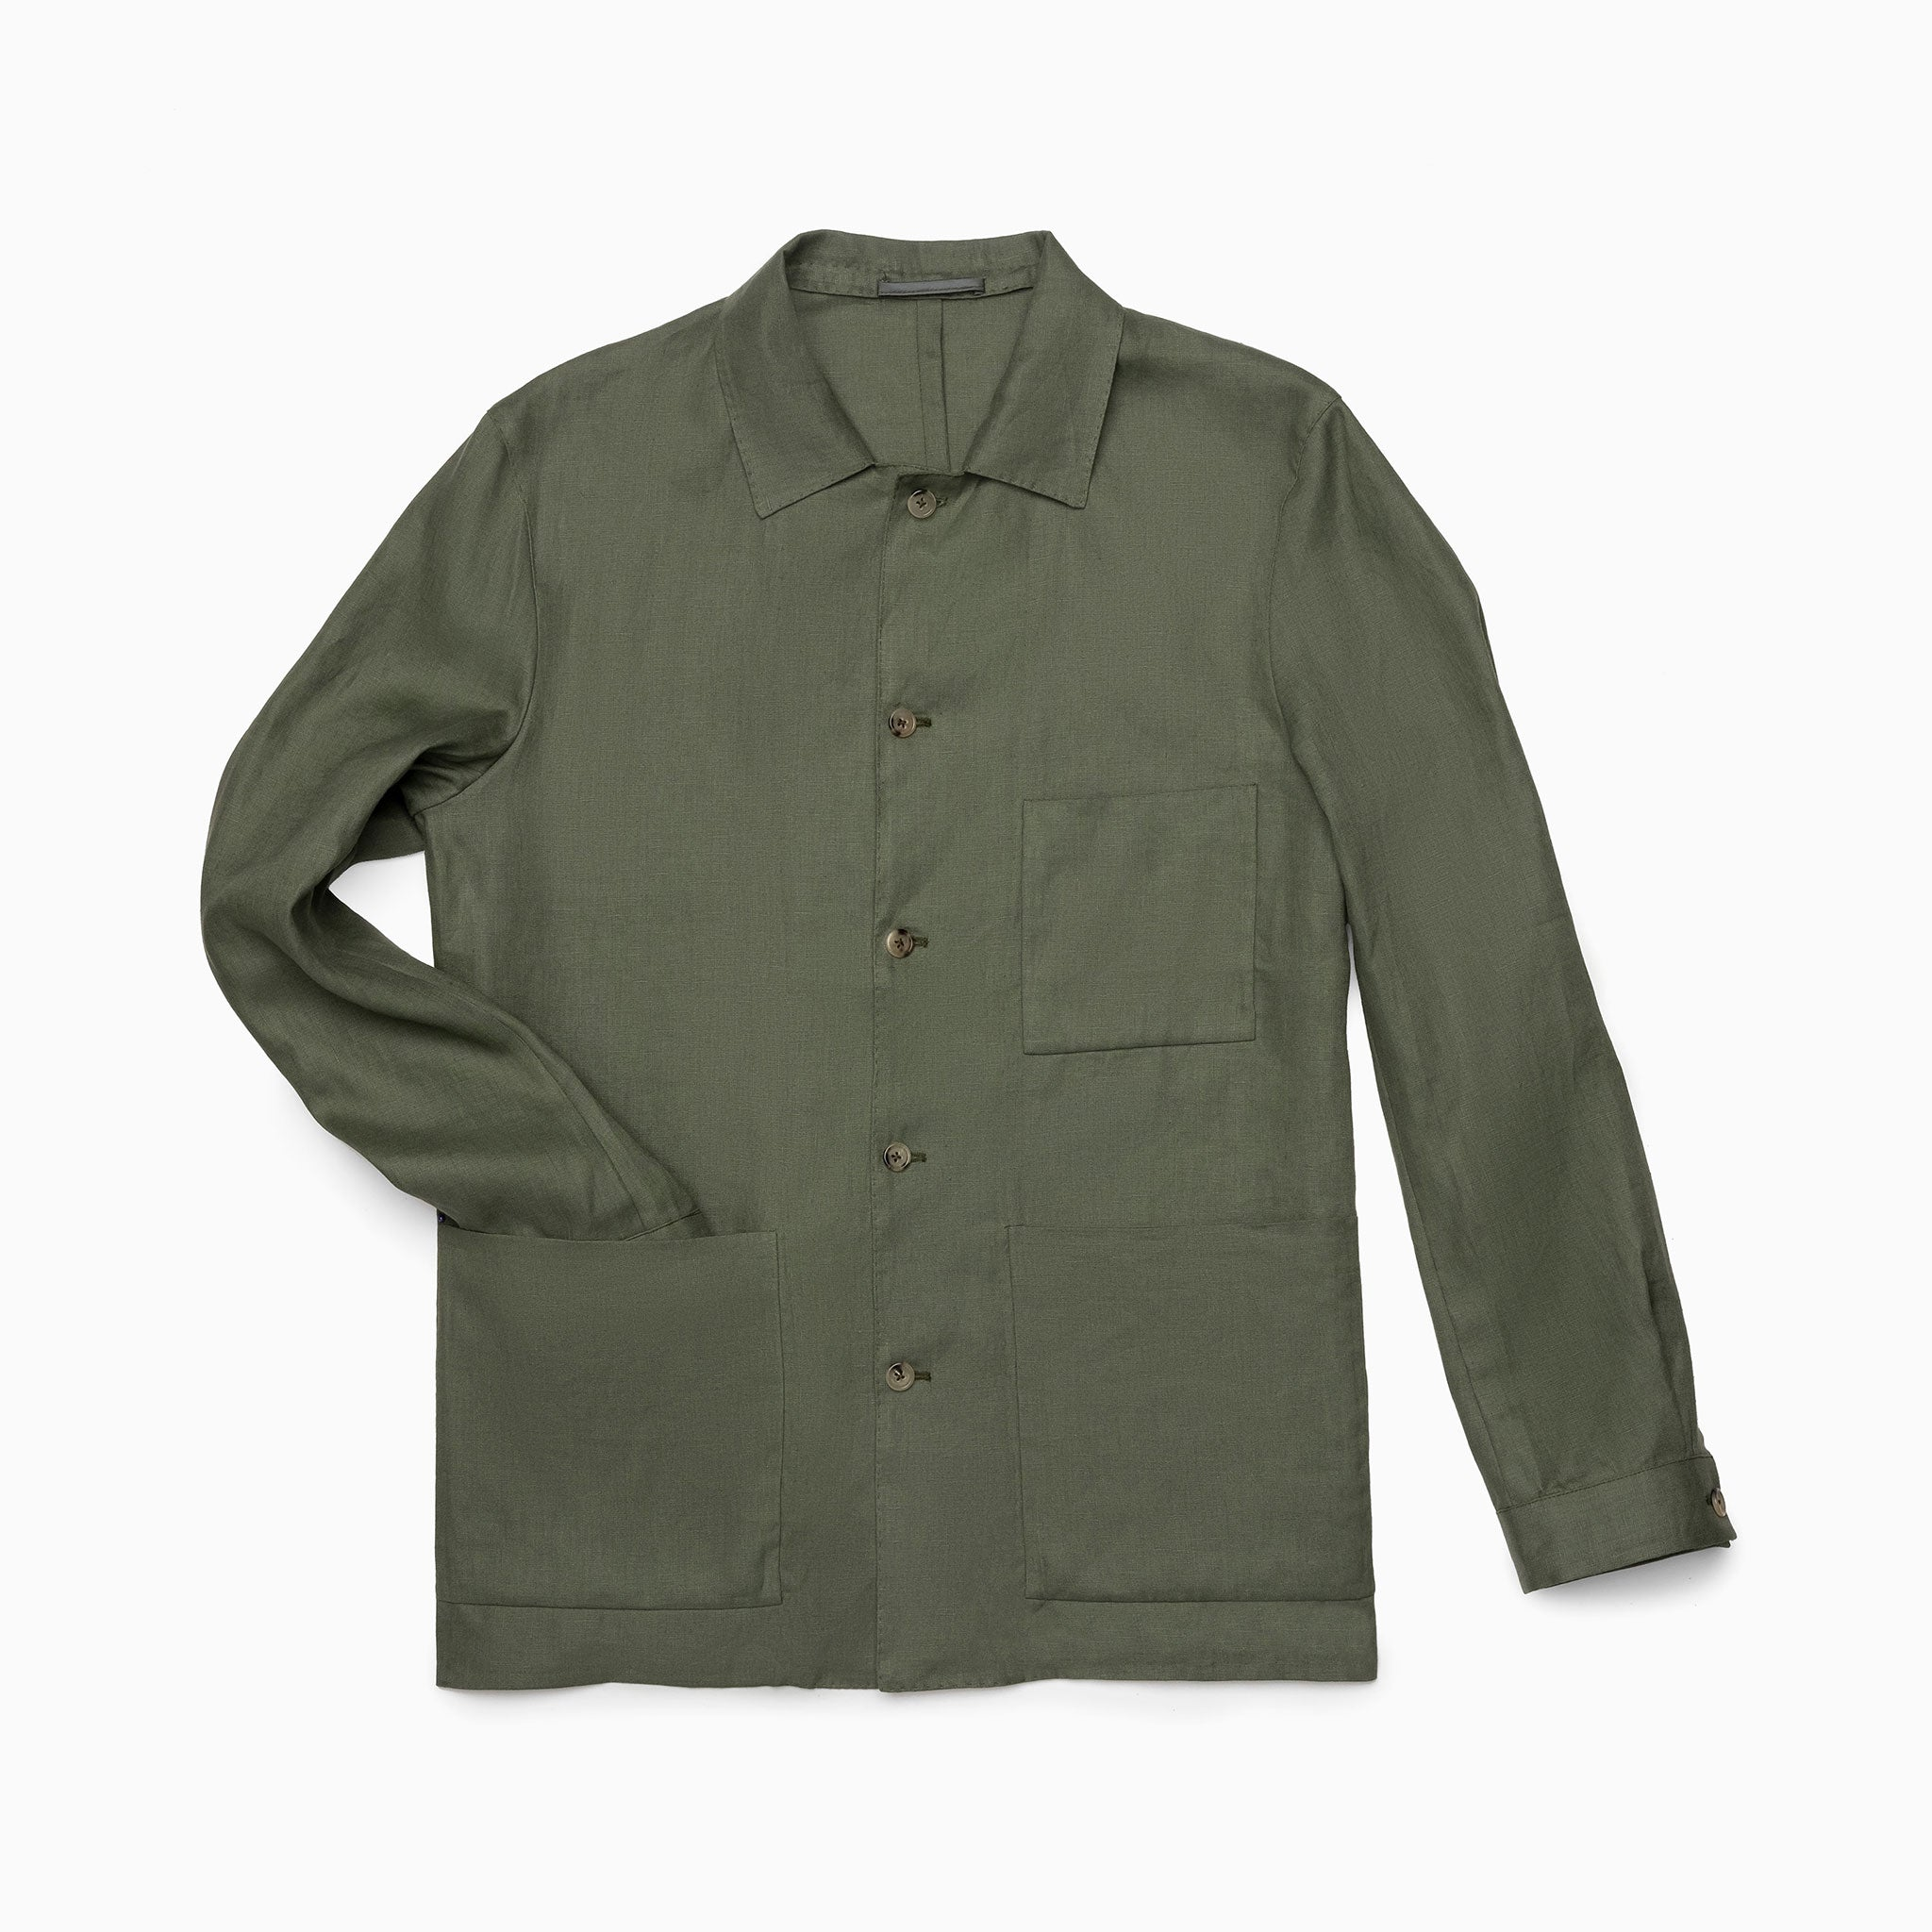 Army Green Linen Shirt Jacket